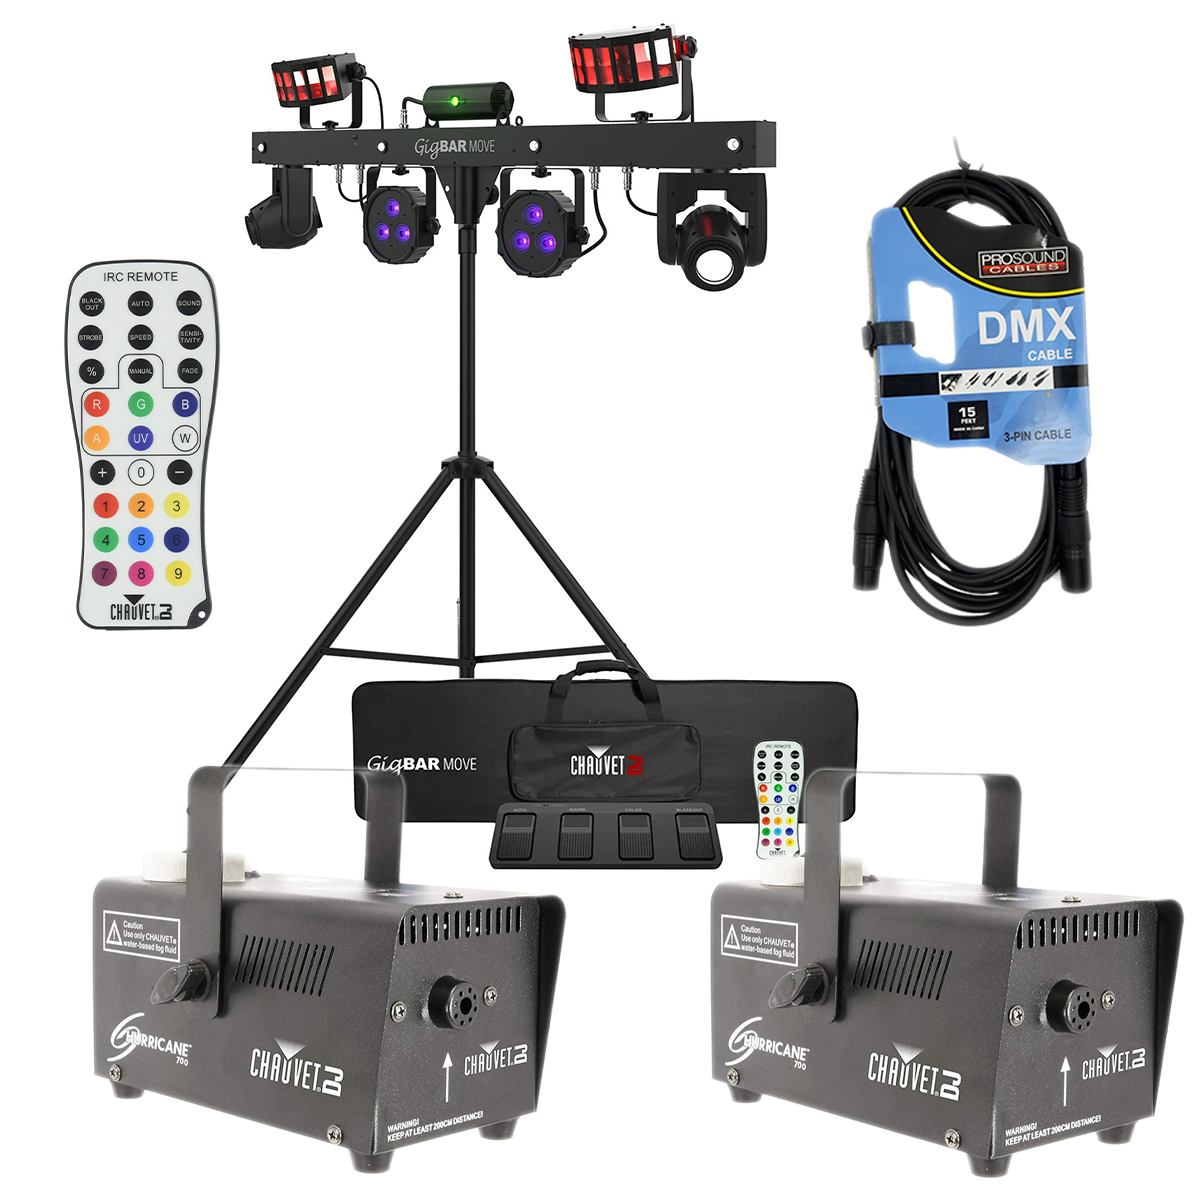 -1 CHAUVET DJ GigBAR Move 5-in-1 Lighting System - Chauvet Hurricane 700 Fog Machine (Pair) - Remote Control - DMX Cable - $799.99